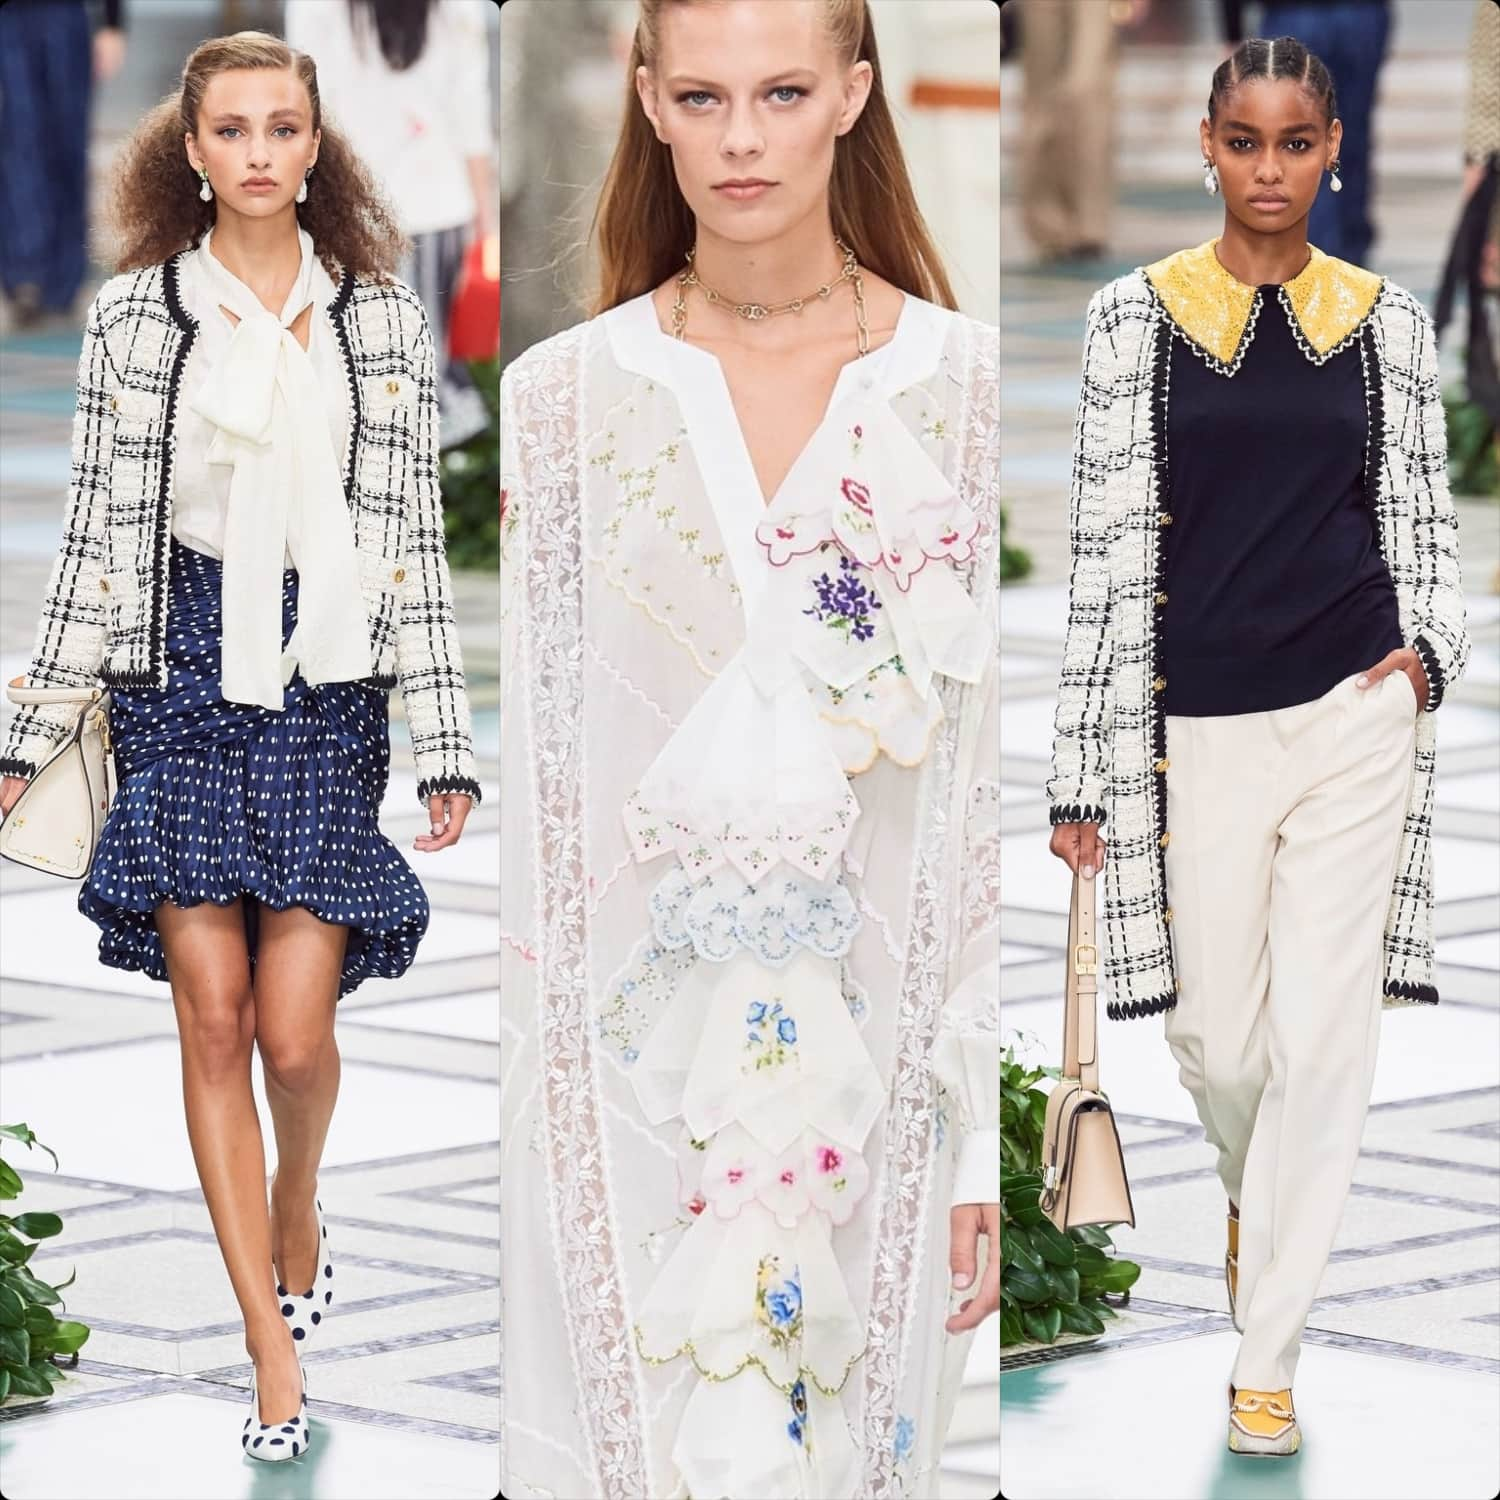 Tory Burch Spring Summer 2020 New York - RUNWAY MAGAZINE Collection